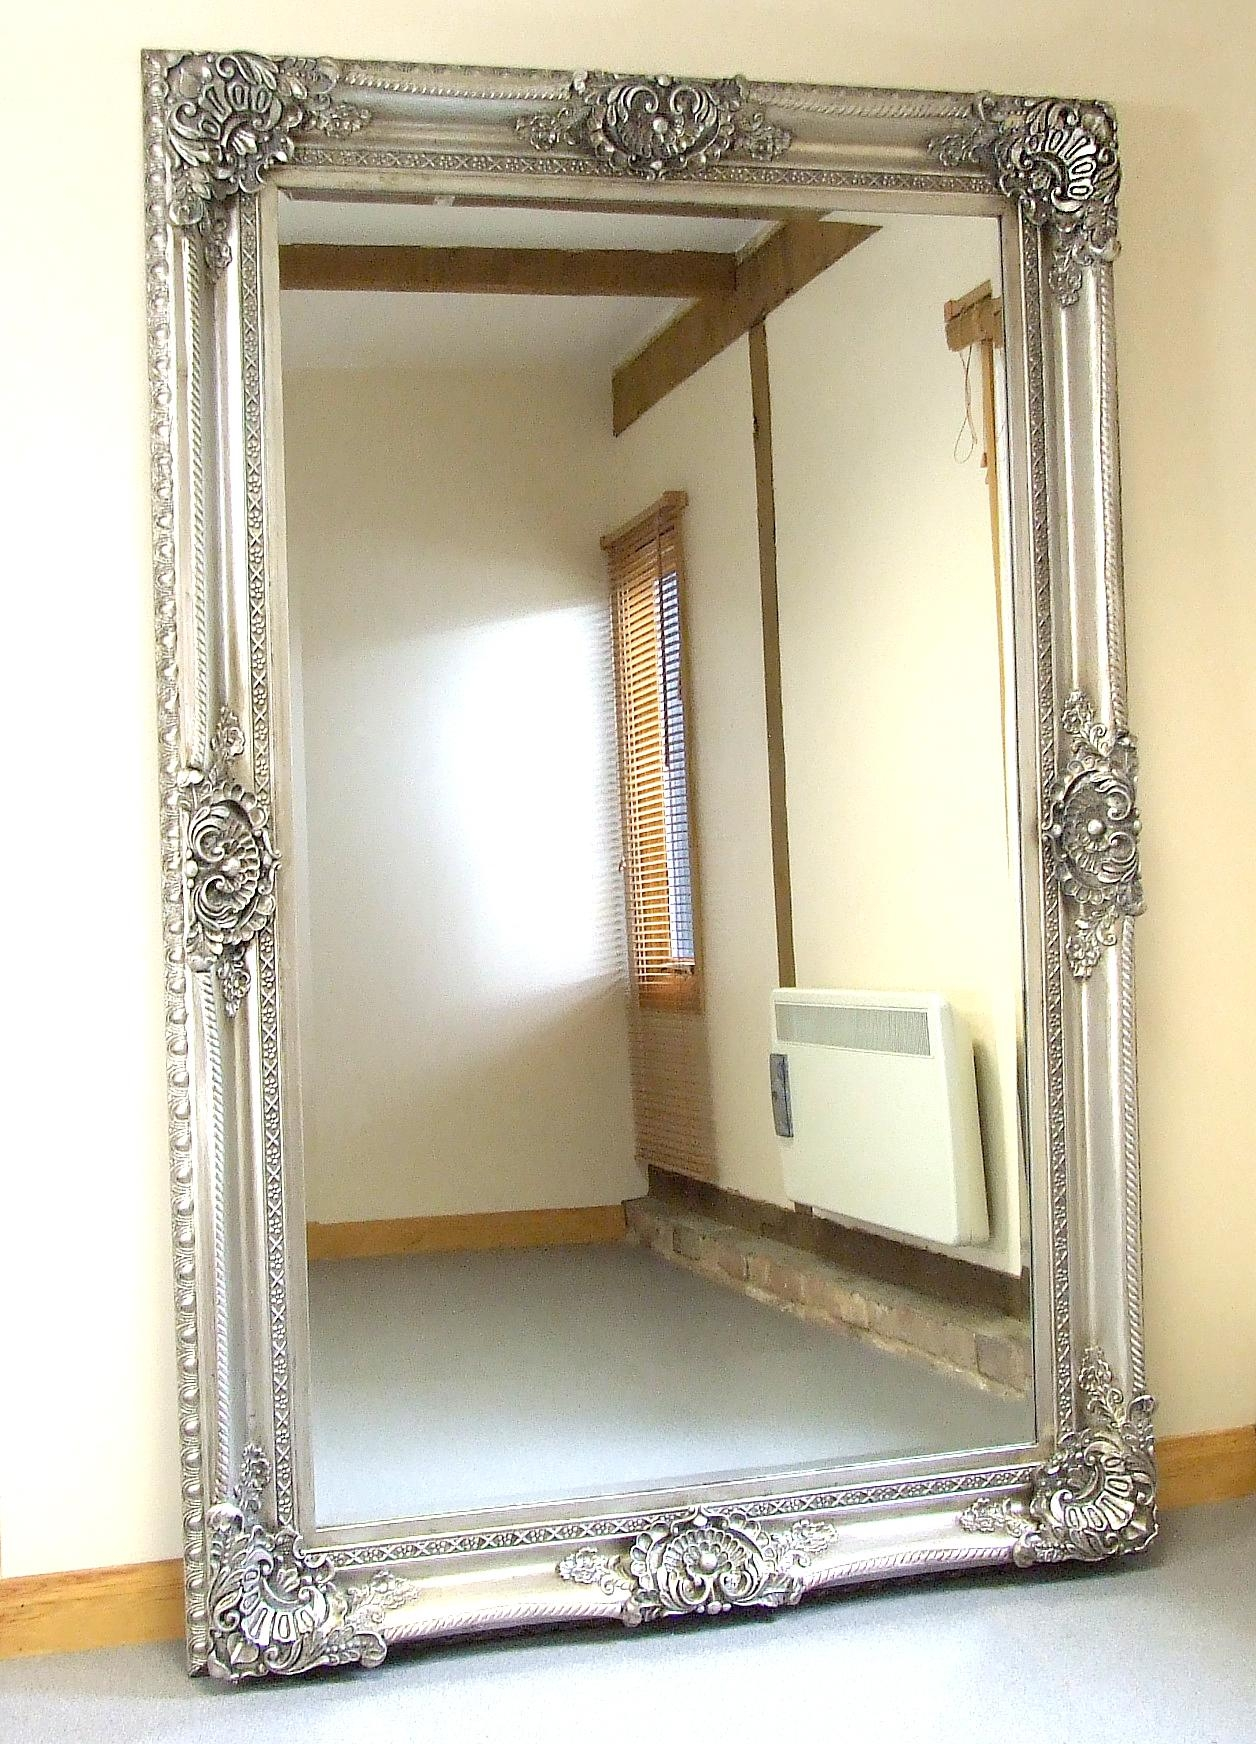 Extra Large Ornate Floor Mirror | Floor Decoration With Regard To Ornate Floor Mirrors (Image 11 of 20)